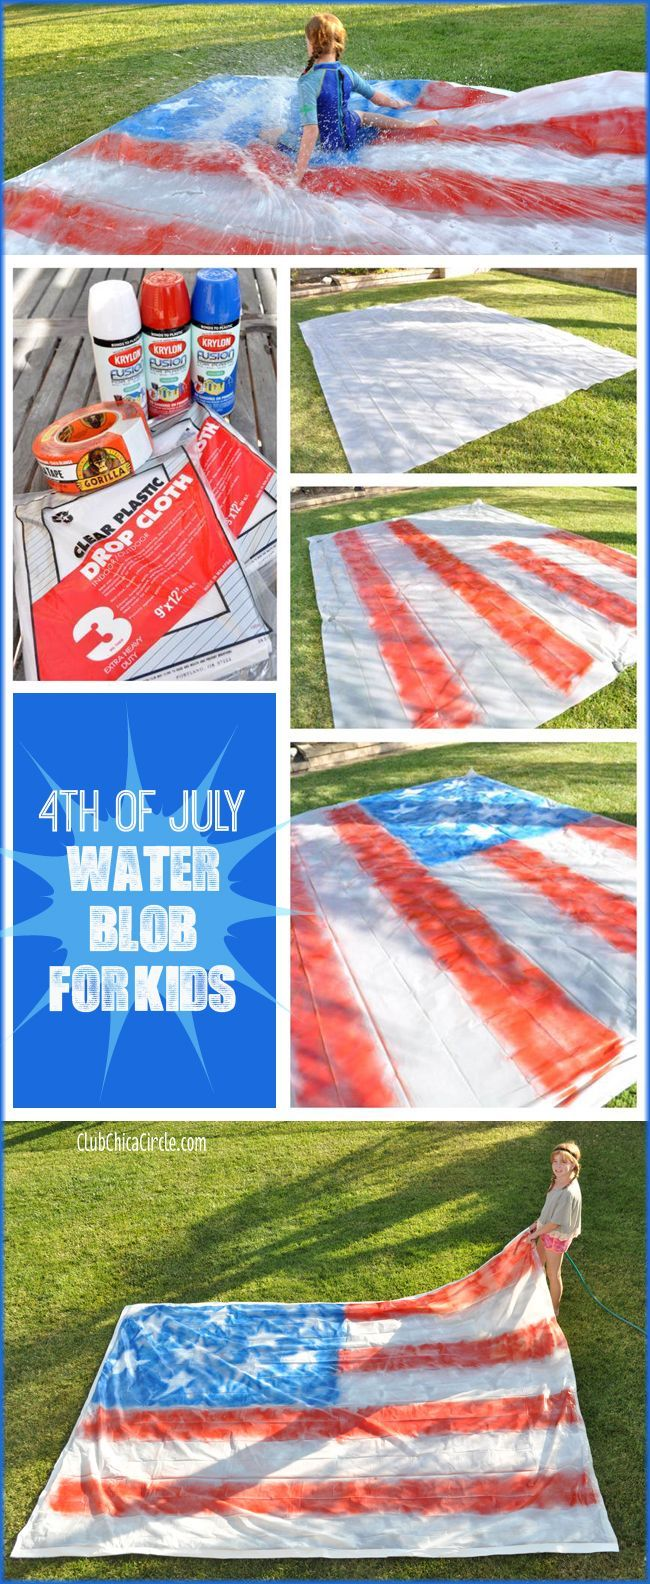 As the temperature continues to creep up, cool off with Club Chica Circle's 4th of July water blob. #July4th #Craft